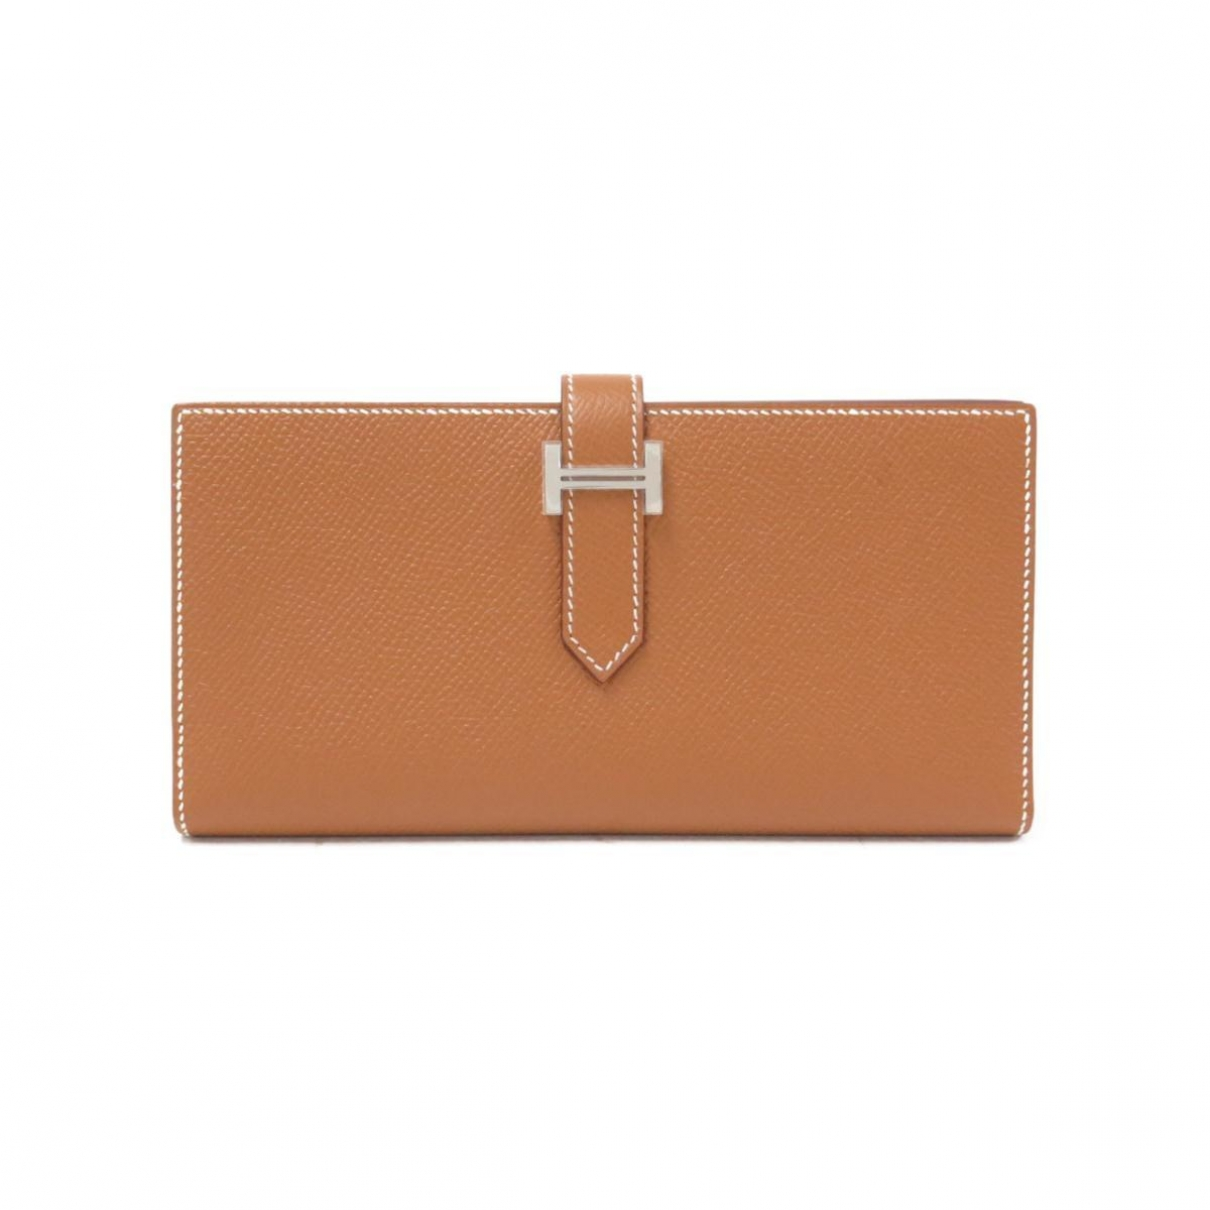 Hermès Béarn Brown Leather wallet for Women \N